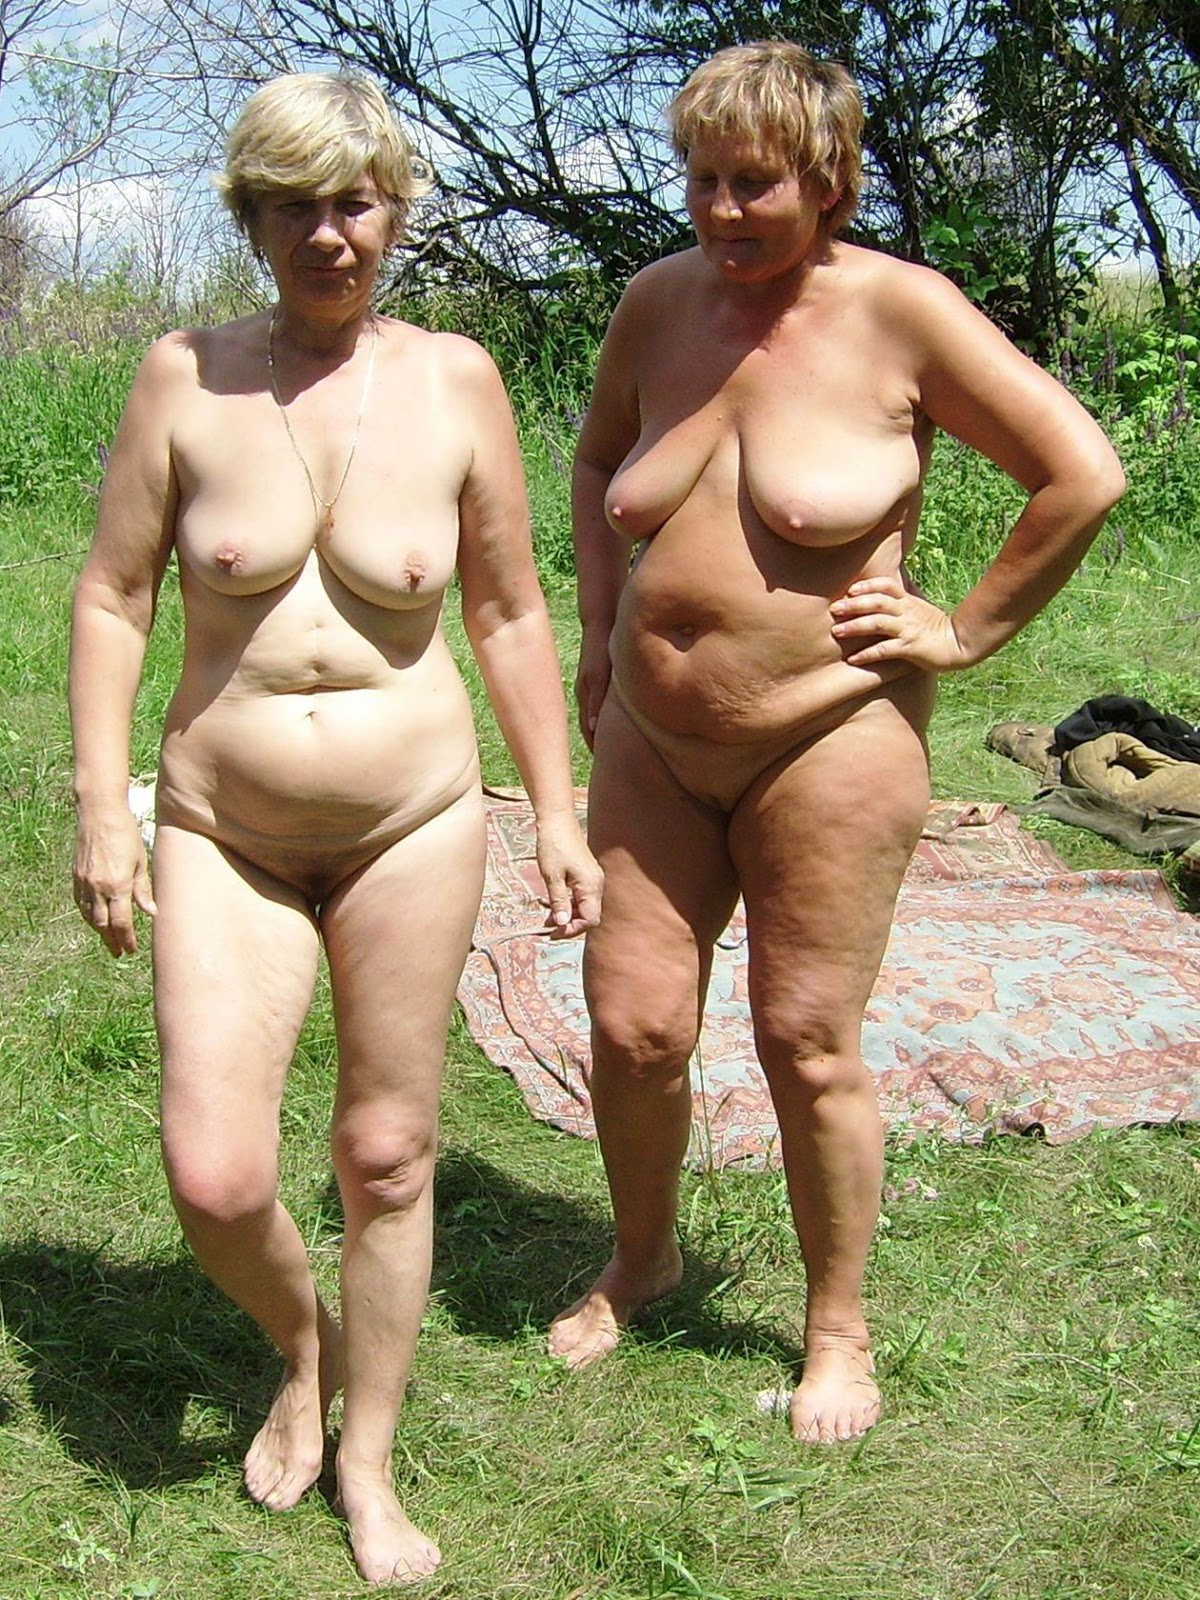 Archive Of Old Women Granny Porn Images Mix-7984